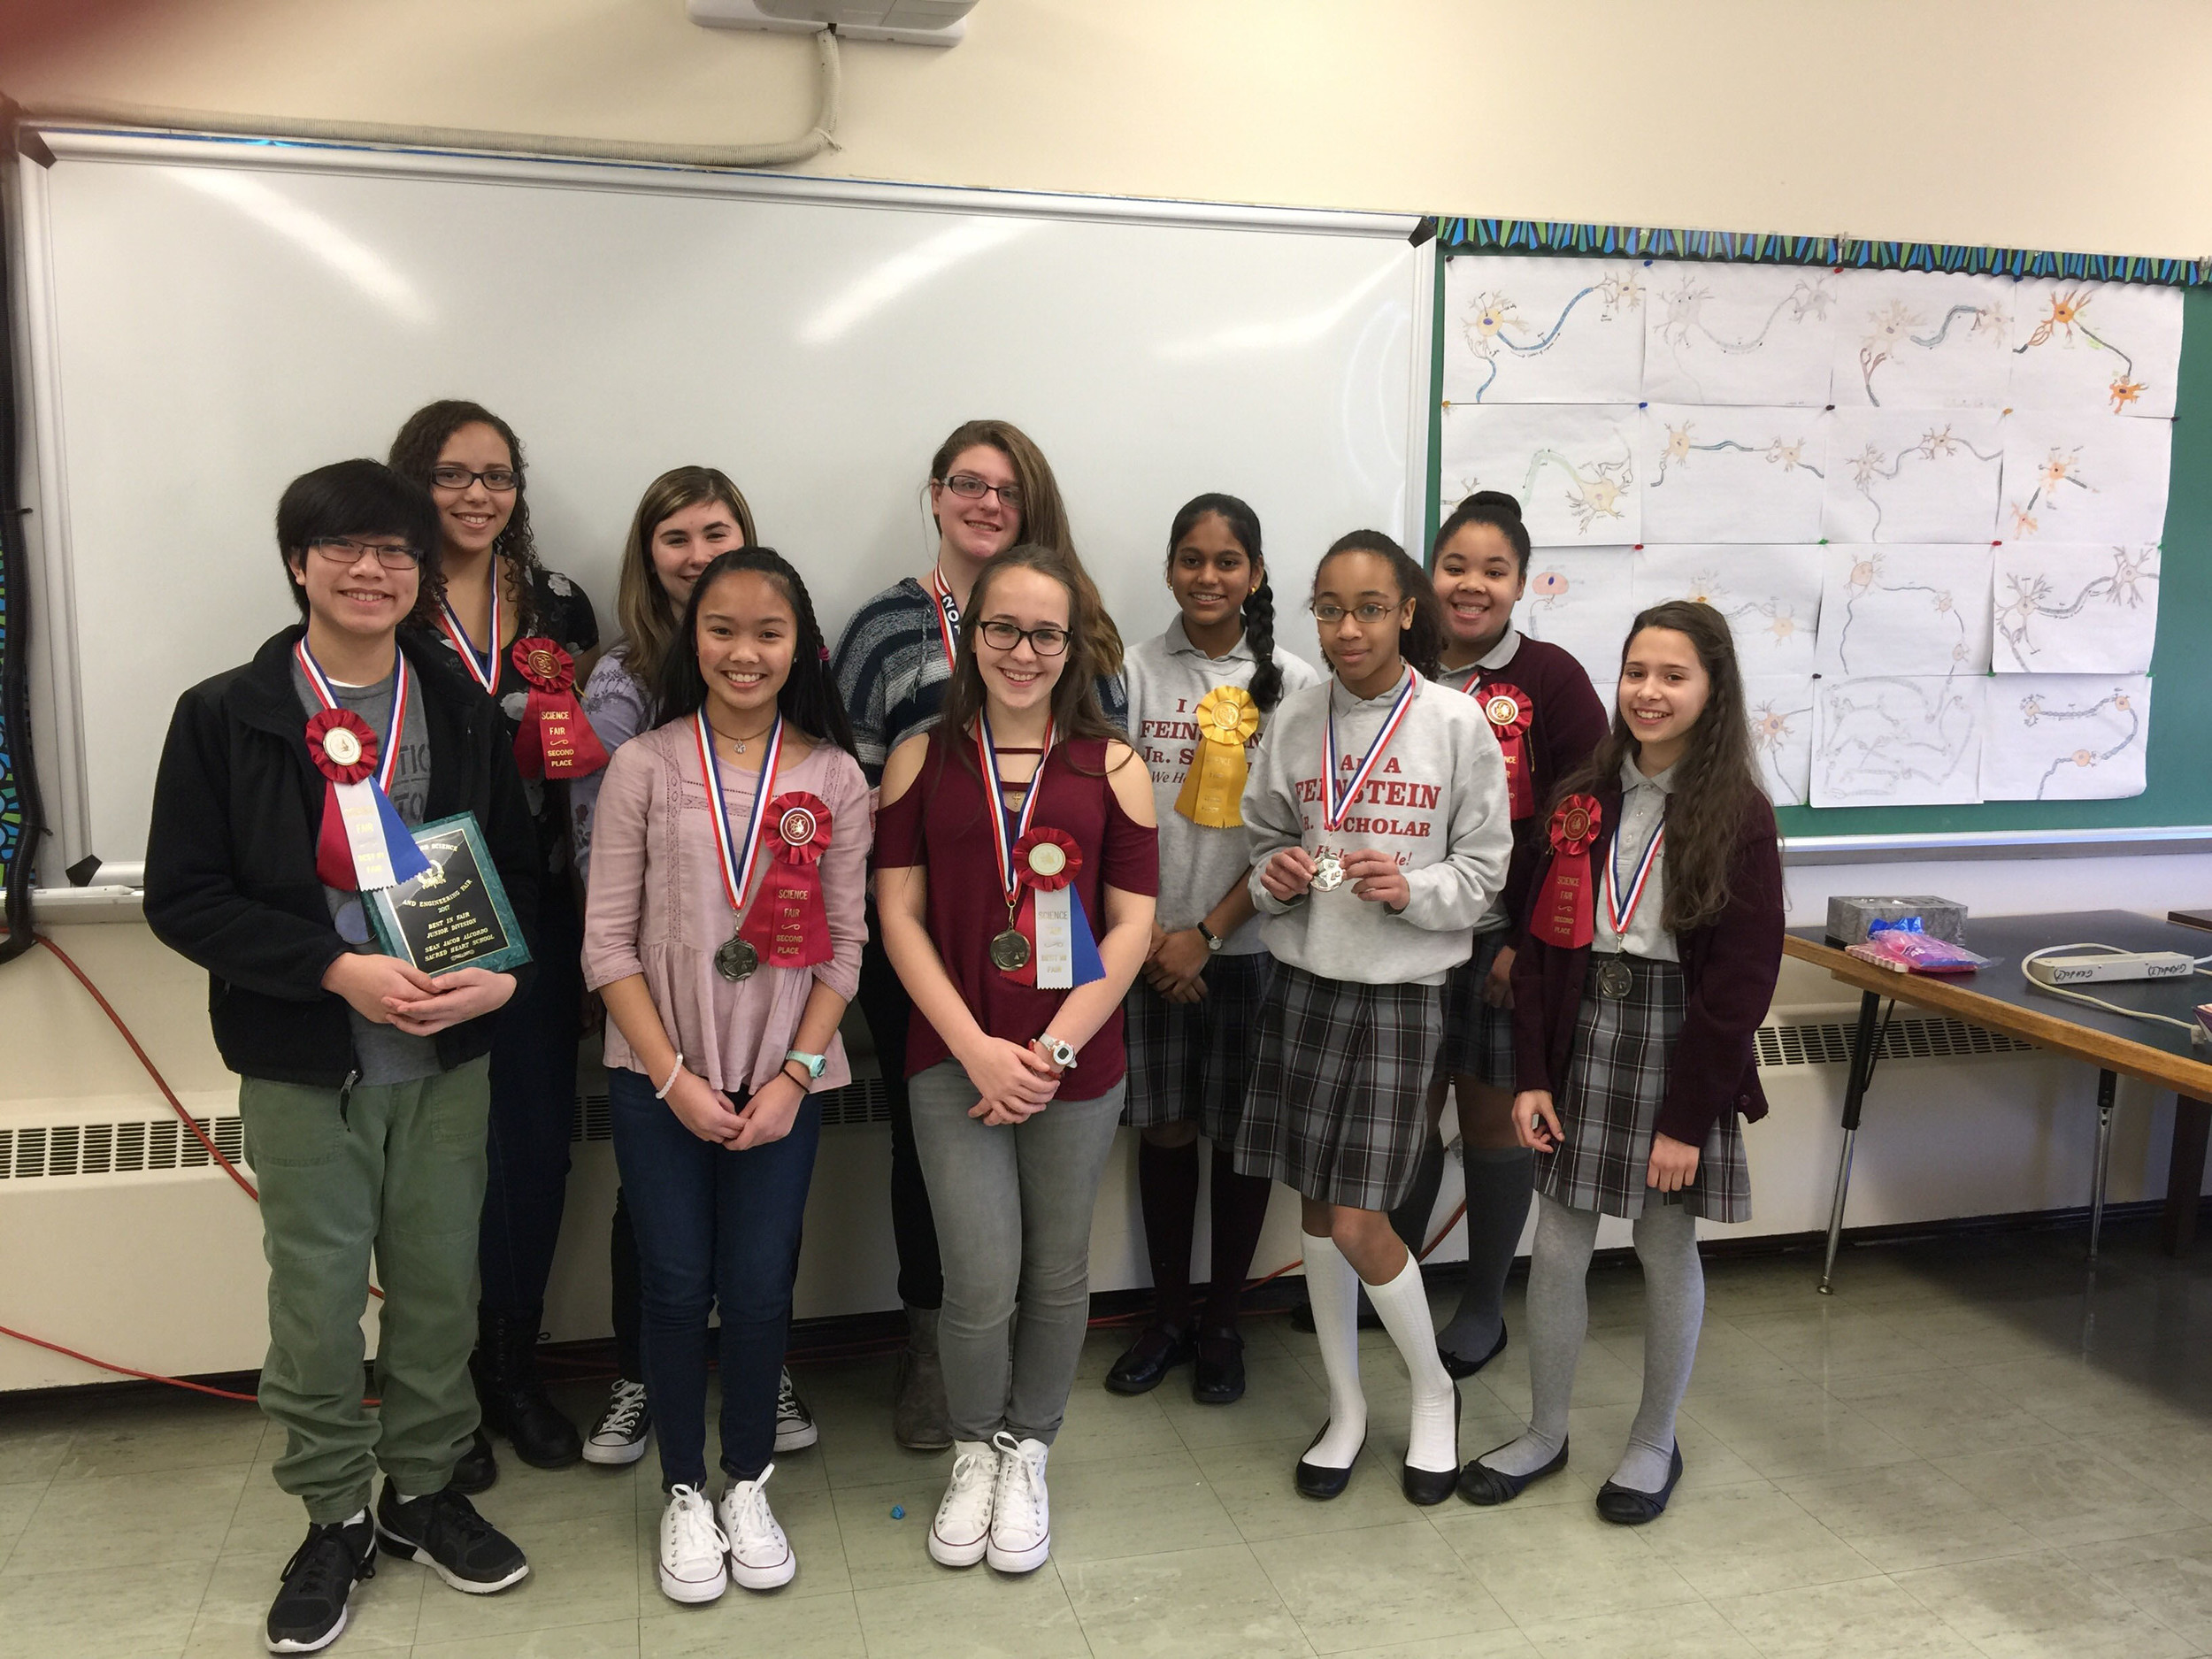 Students who attended the RI Science & Engineering Fair on March 18th.